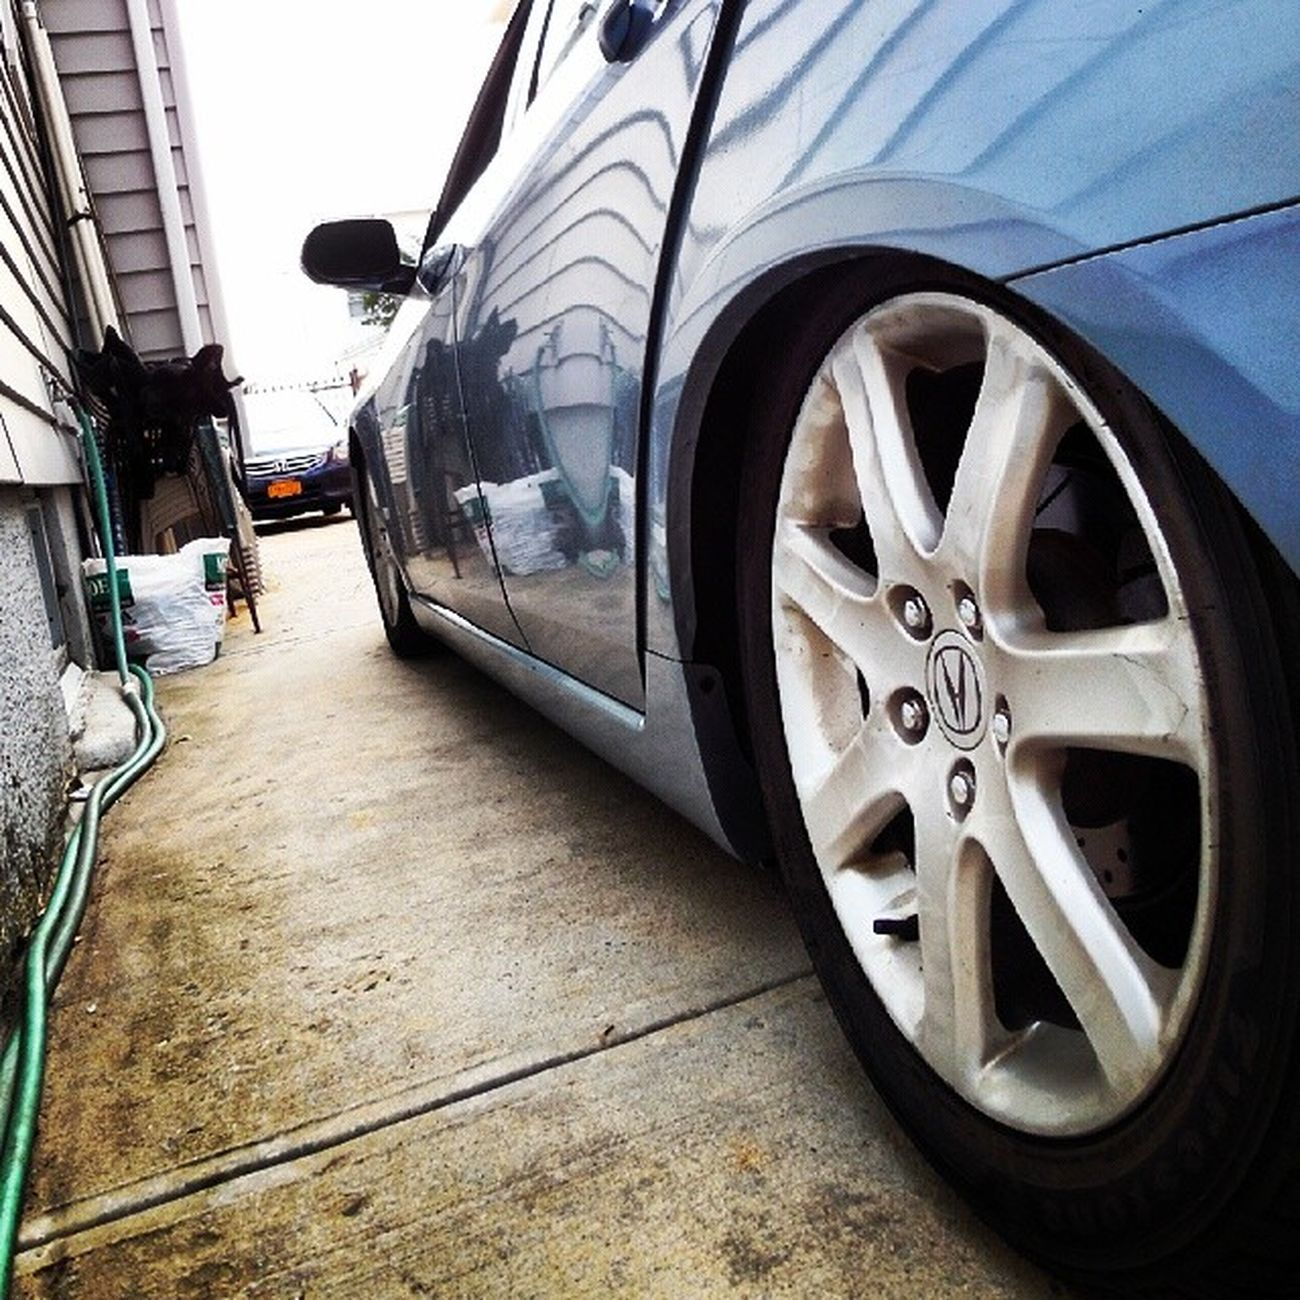 @humblestateofmind riding low @imperialstance Acura Tsx Carporn GetLowAsShit ouch WatchForPotholes